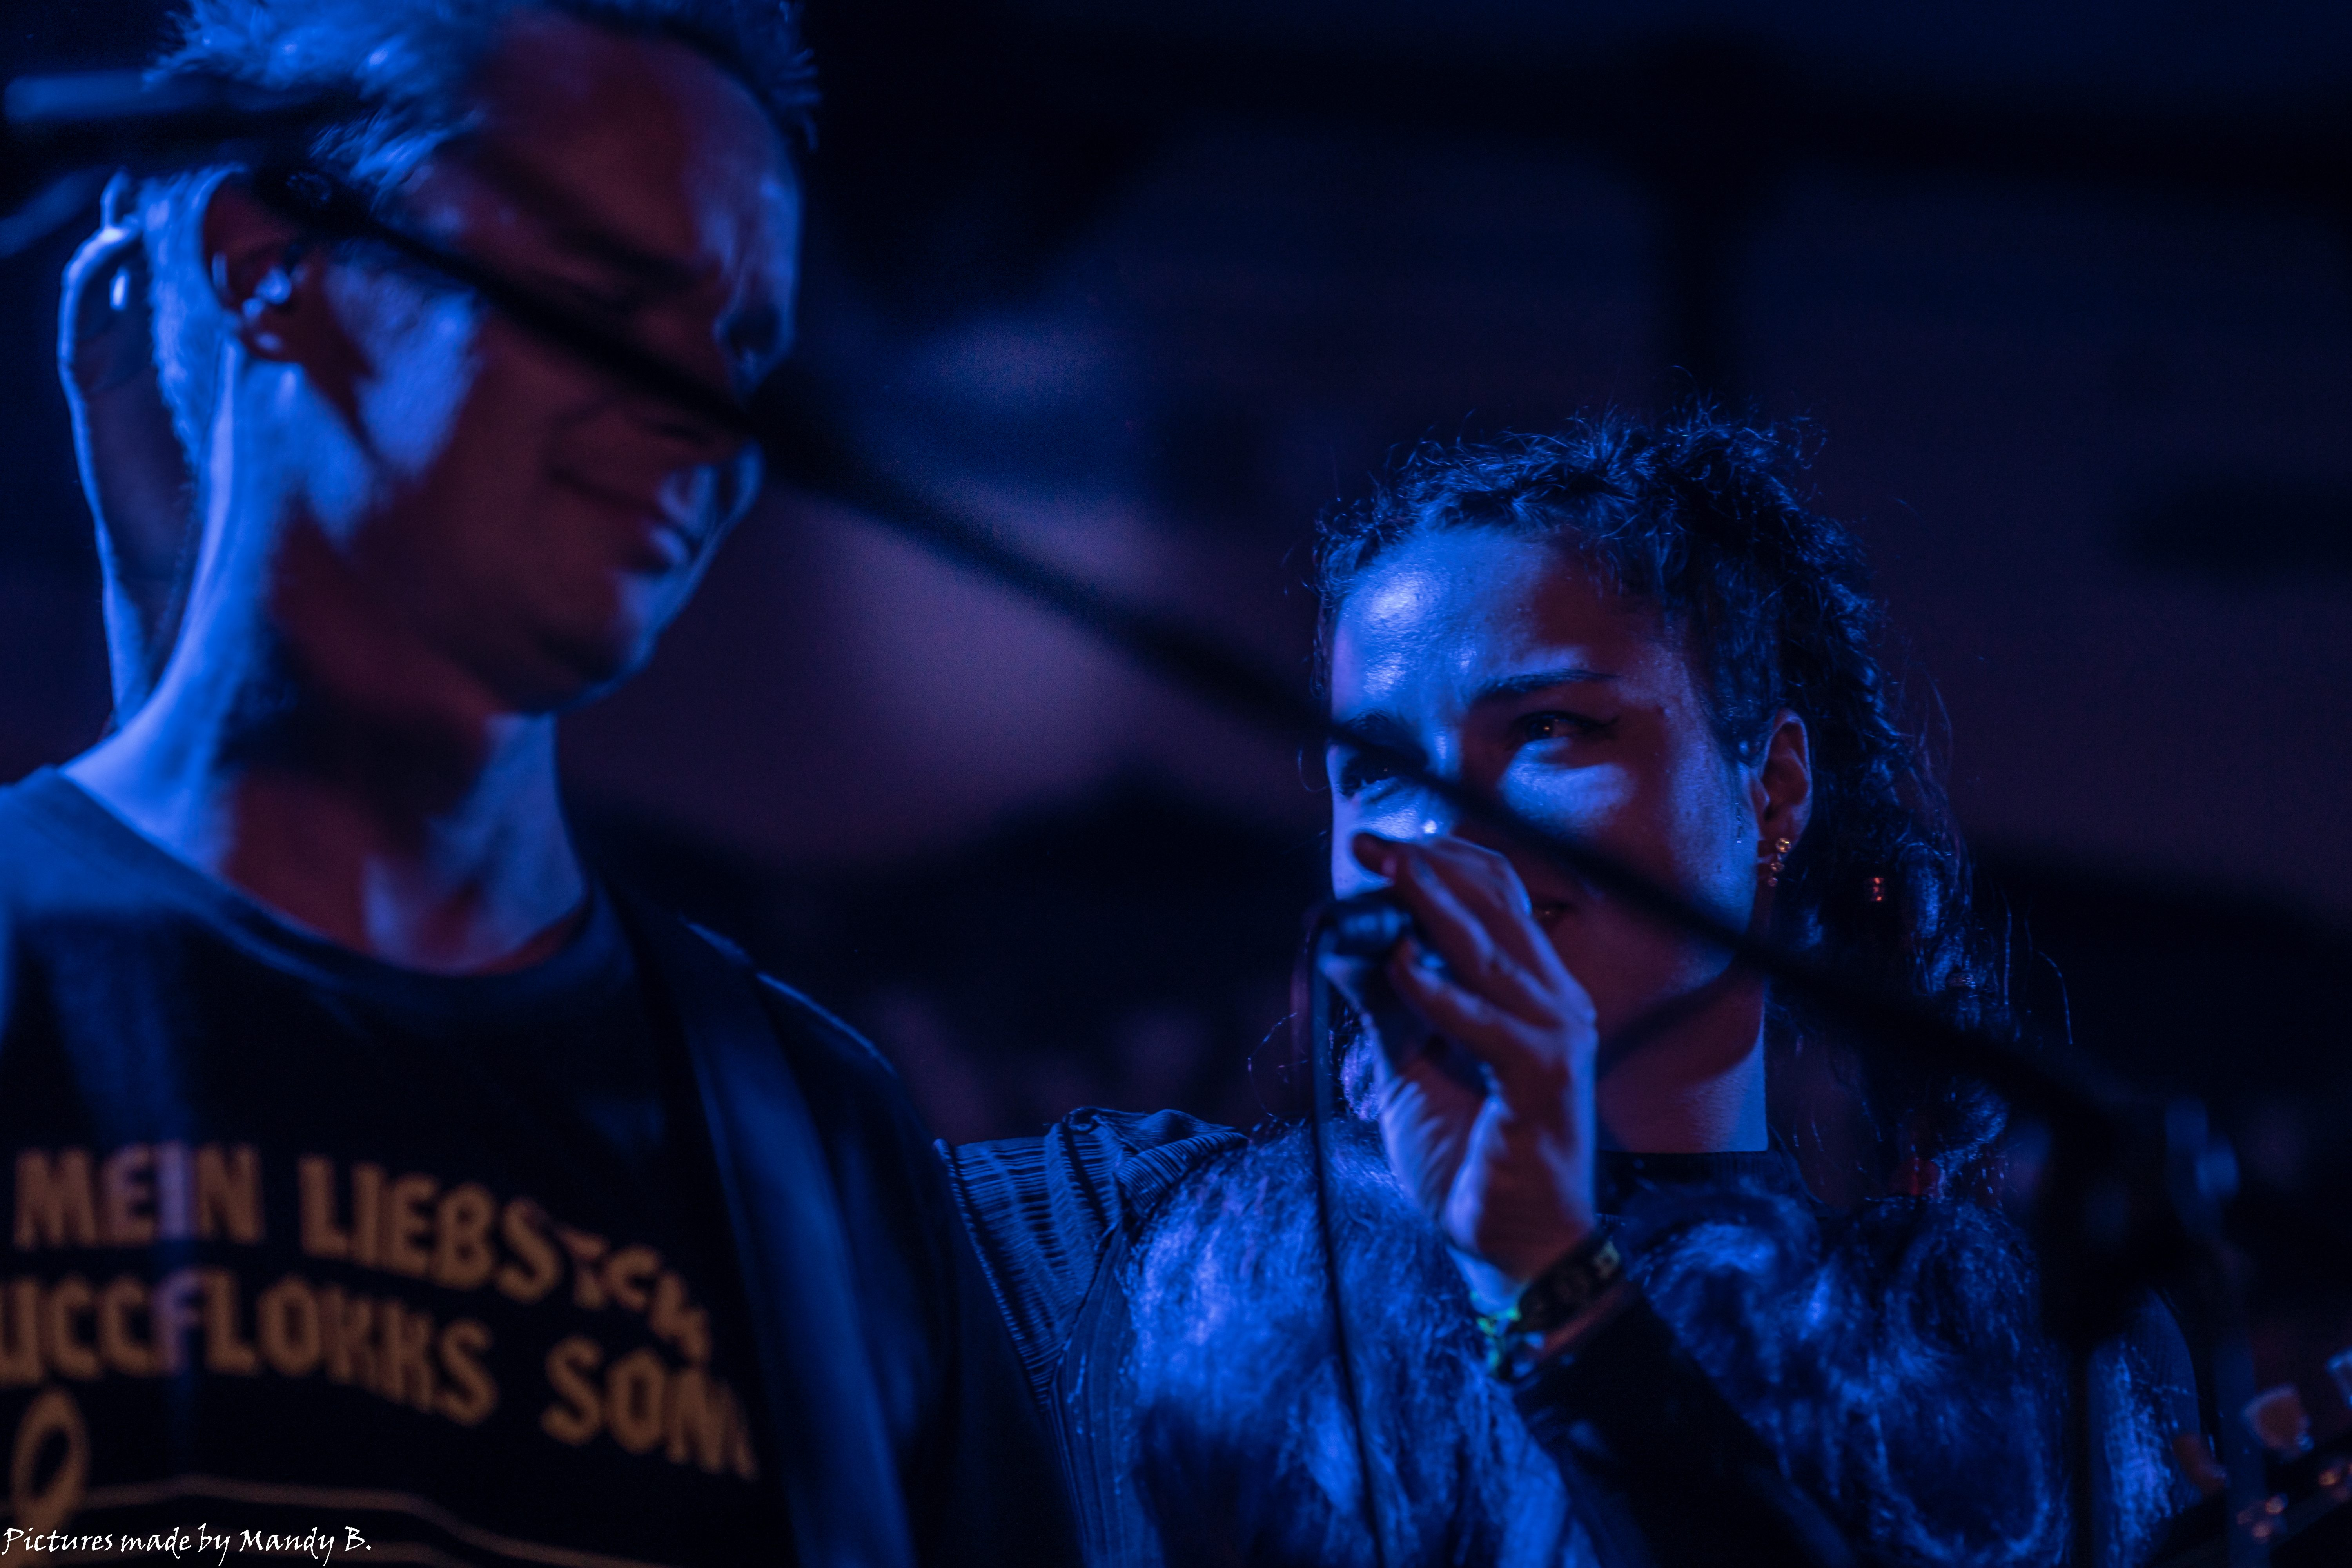 JoSe and SanDra of Waiting in Vain at Club Eule in Dresden on 20 September 2019